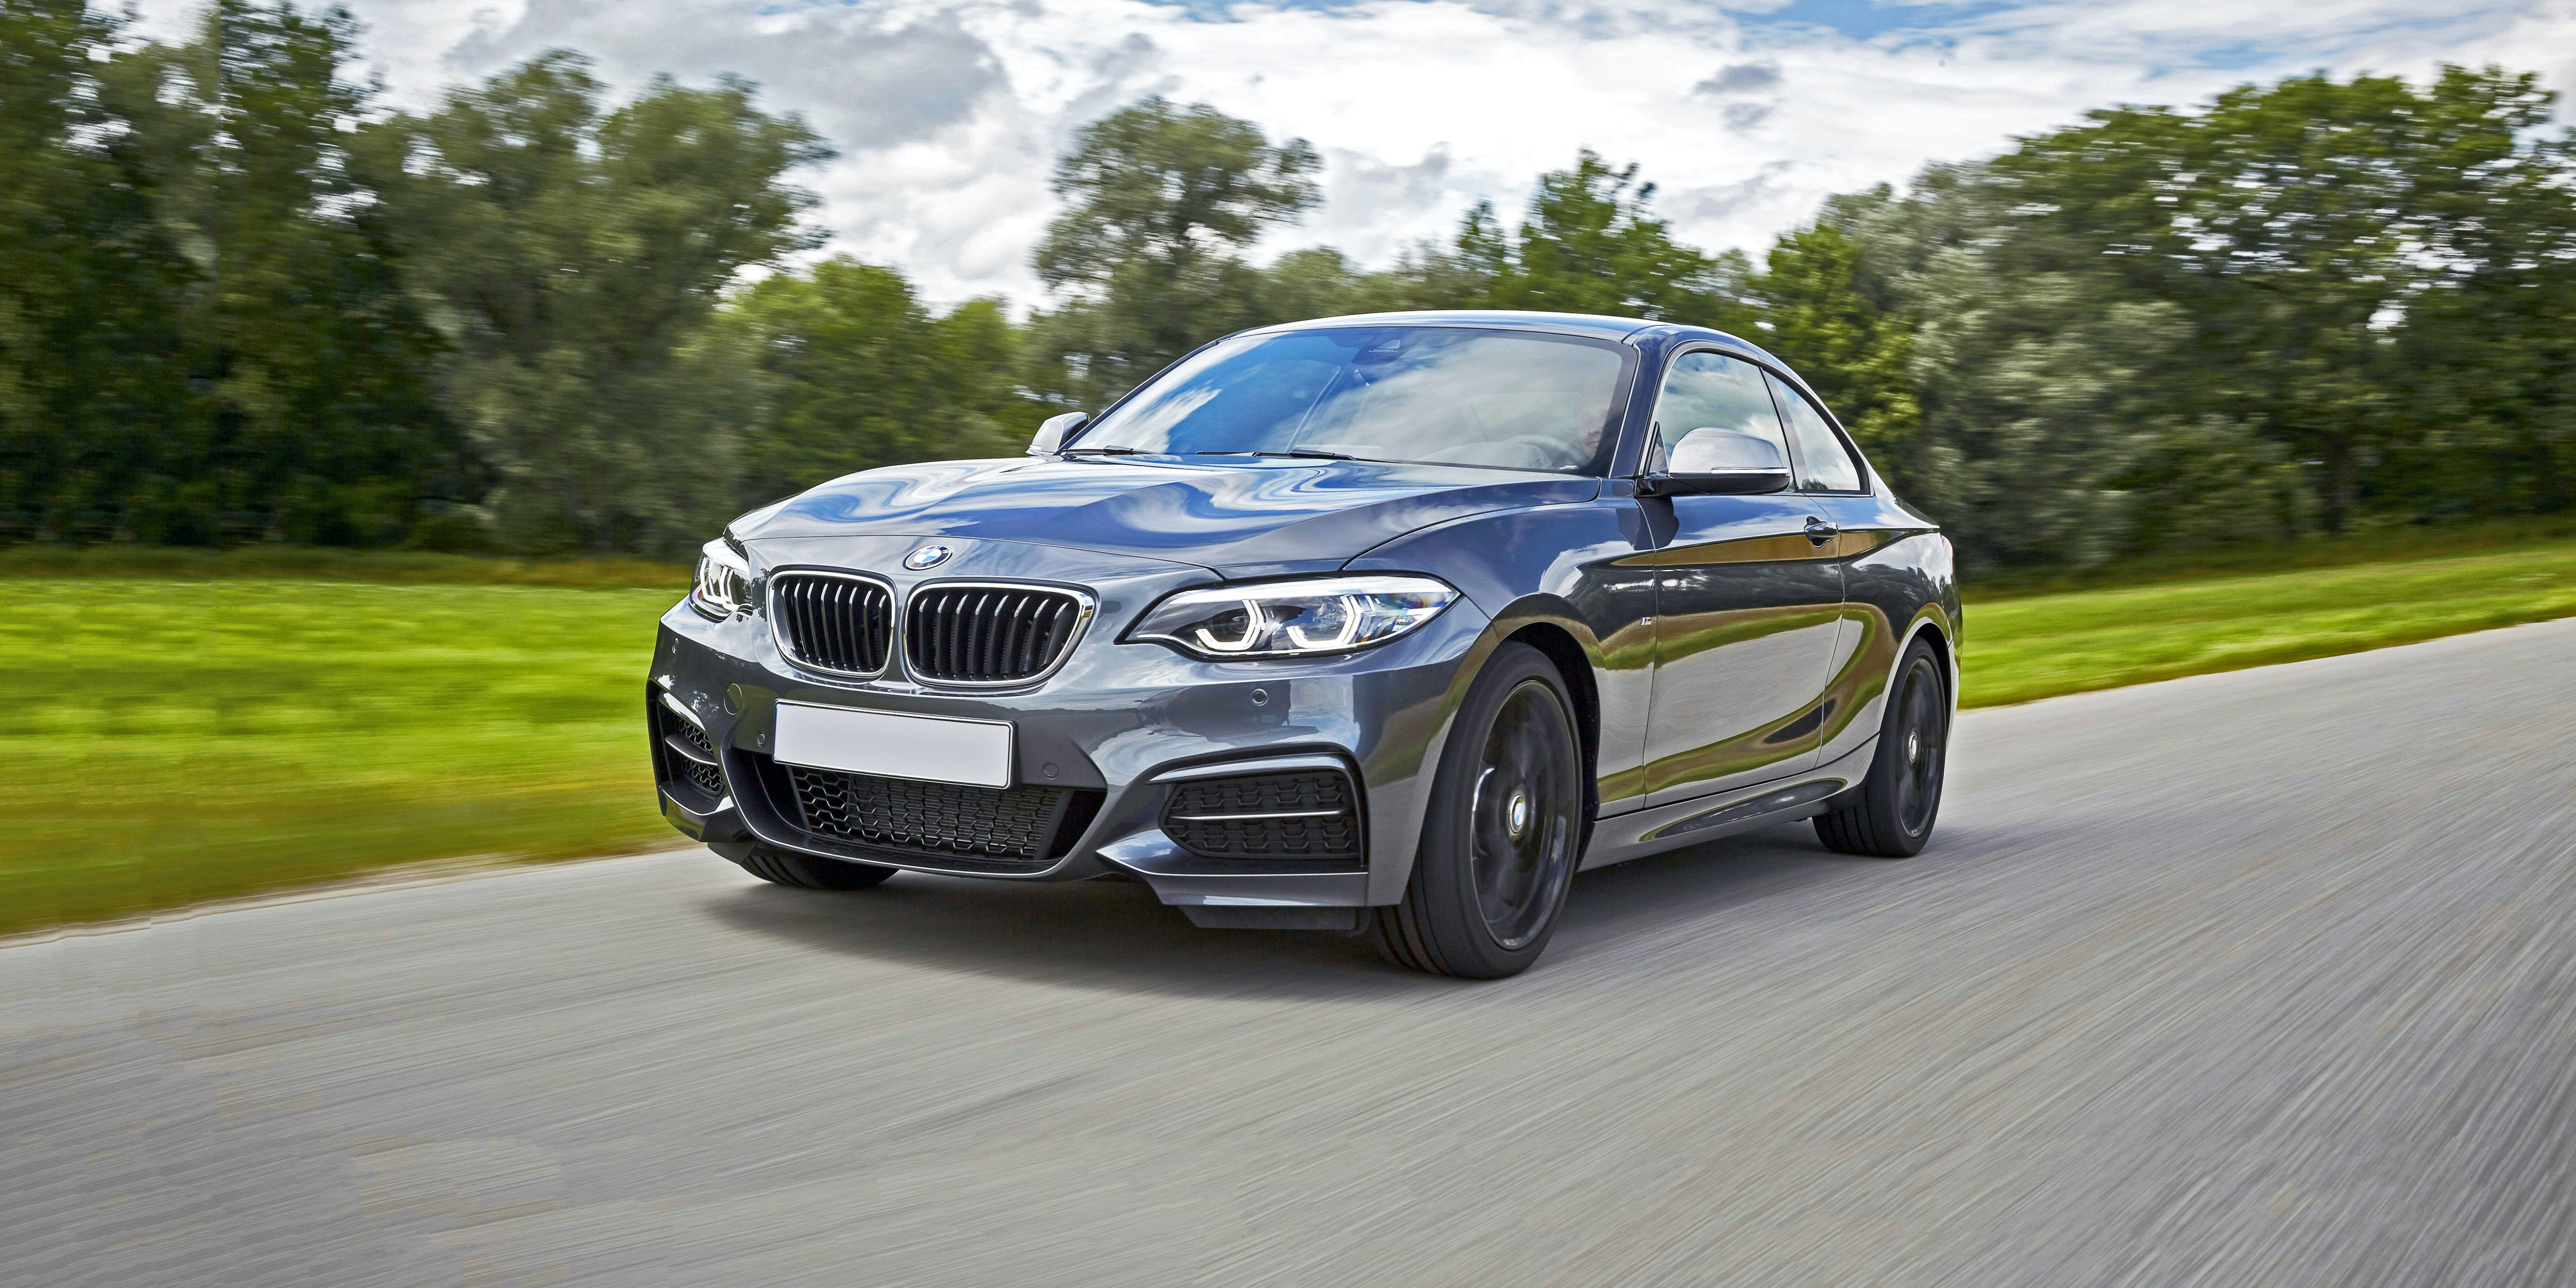 The M240i looks just like a 2 Series, with slightly sportier bumpers